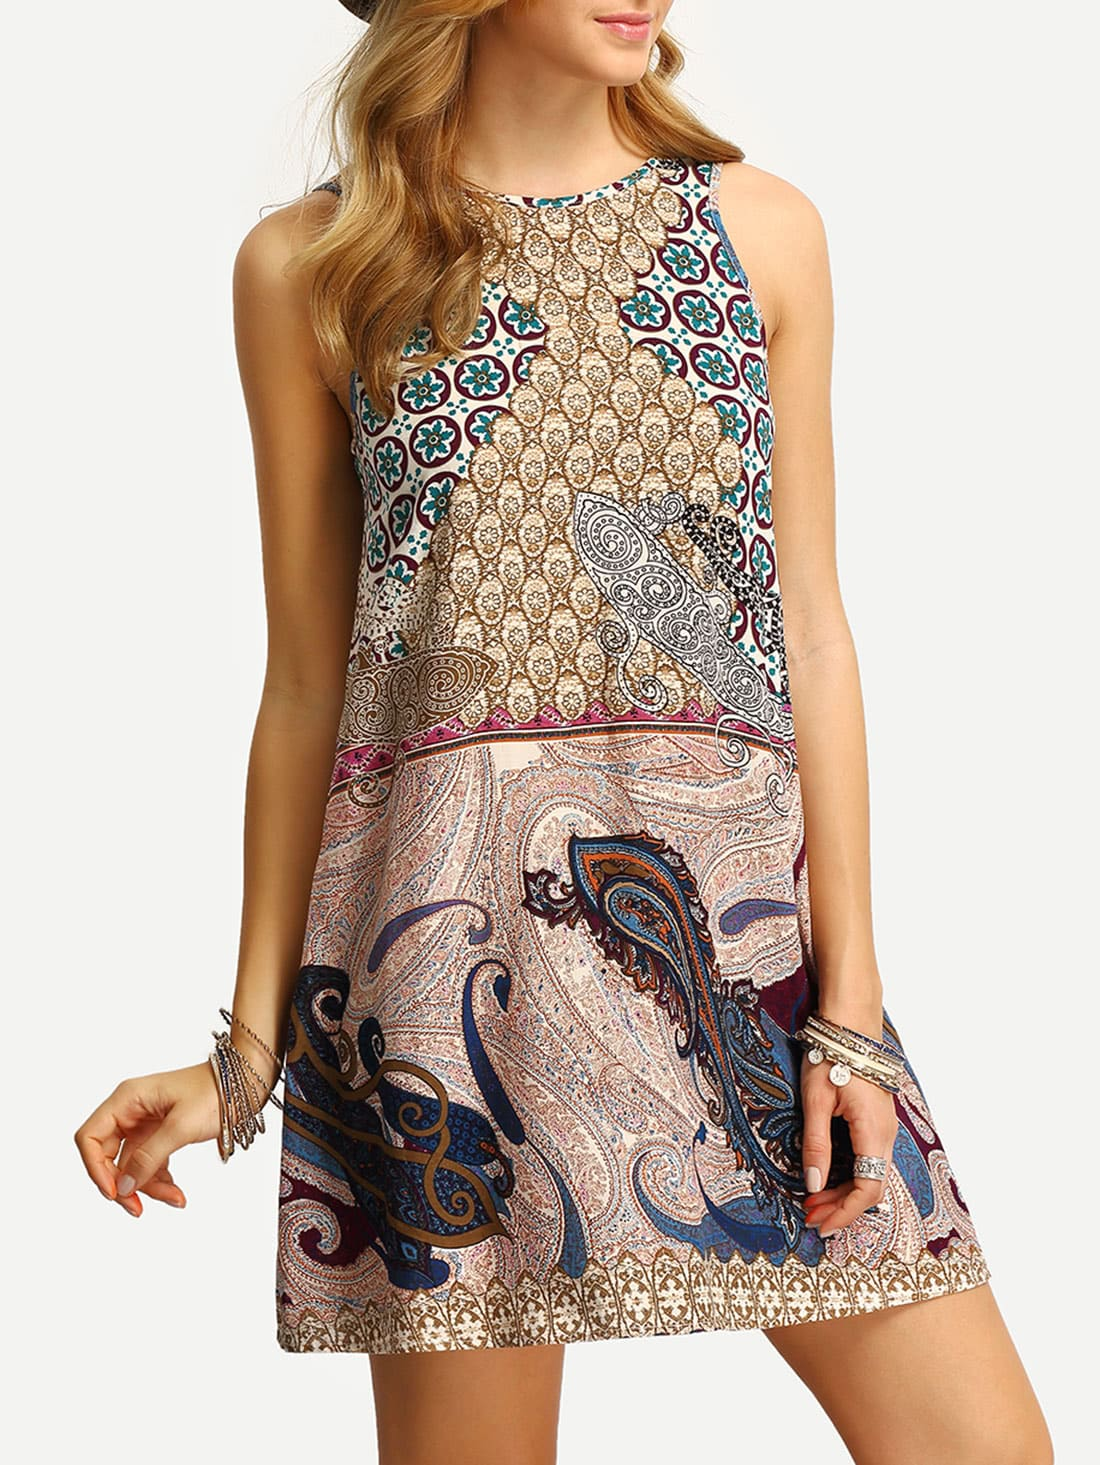 http://it.shein.com/Multicolor-Sleeveless-Vintage-Print-V-Back-Dress-p-273834-cat-1727.html